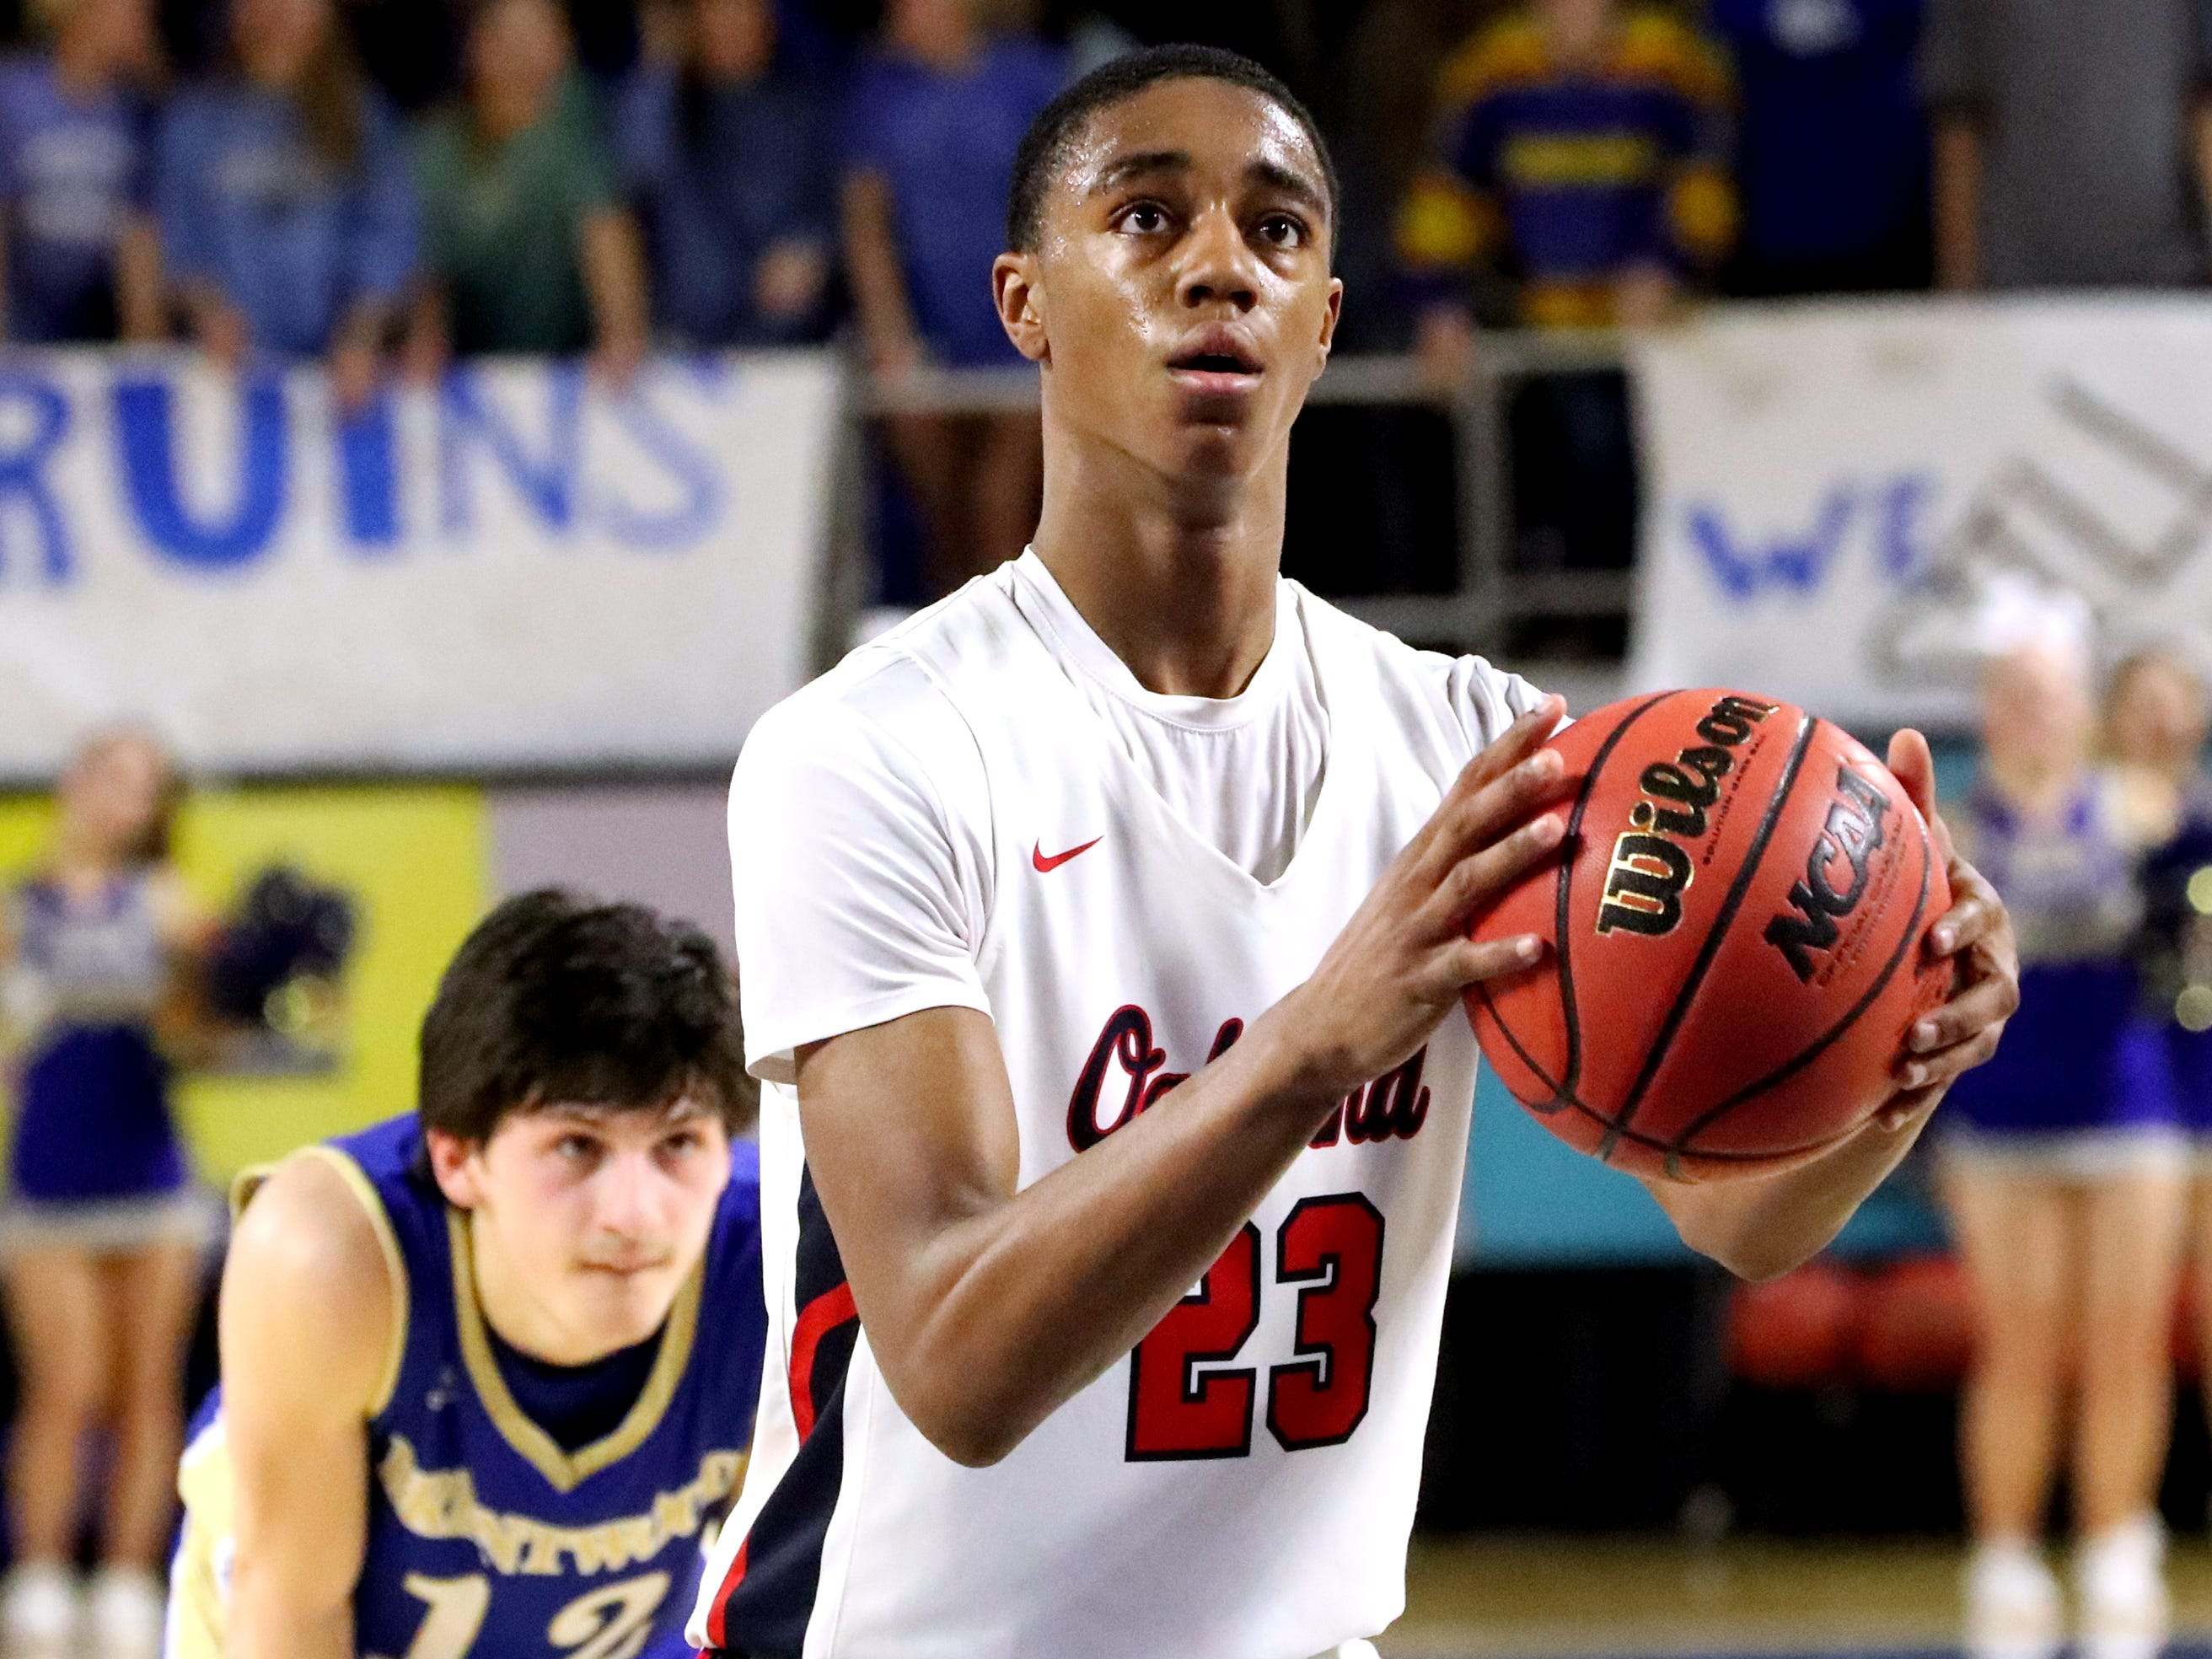 Oakland's Dorian Anderson (23) shoots a free throw during the quarterfinal round of the TSSAA Class AAA Boys State Tournament against Brentwood, on Thursday, March 14, 2019, at Murphy Center in Murfreesboro, Tenn.